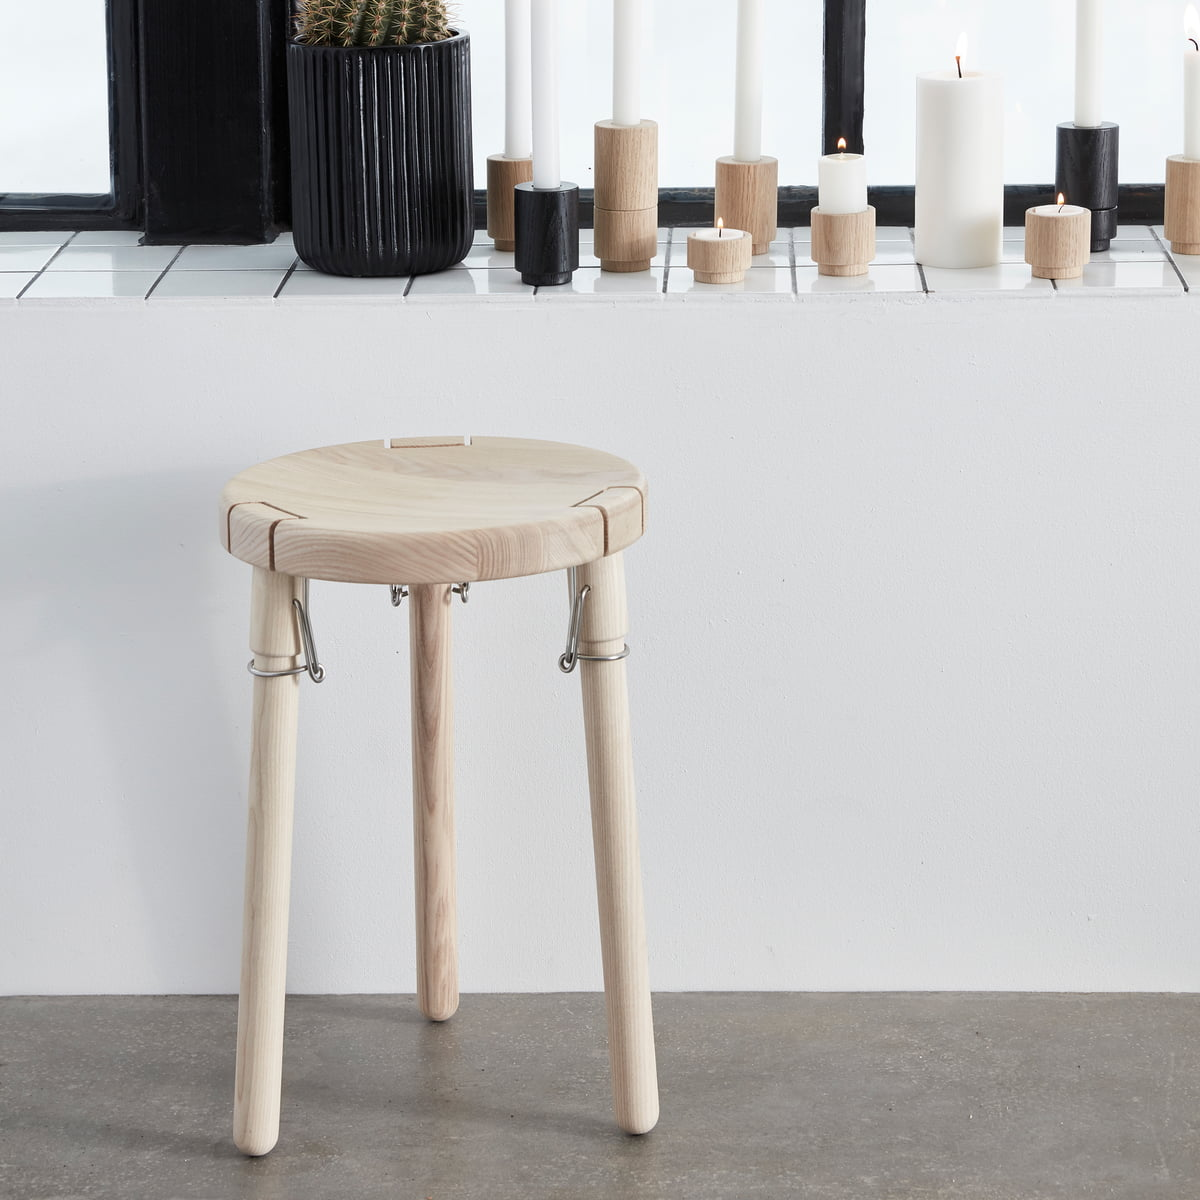 Awesome U1 Stool And Create Me Candle And Tea Light Holder From Andersen Furniture